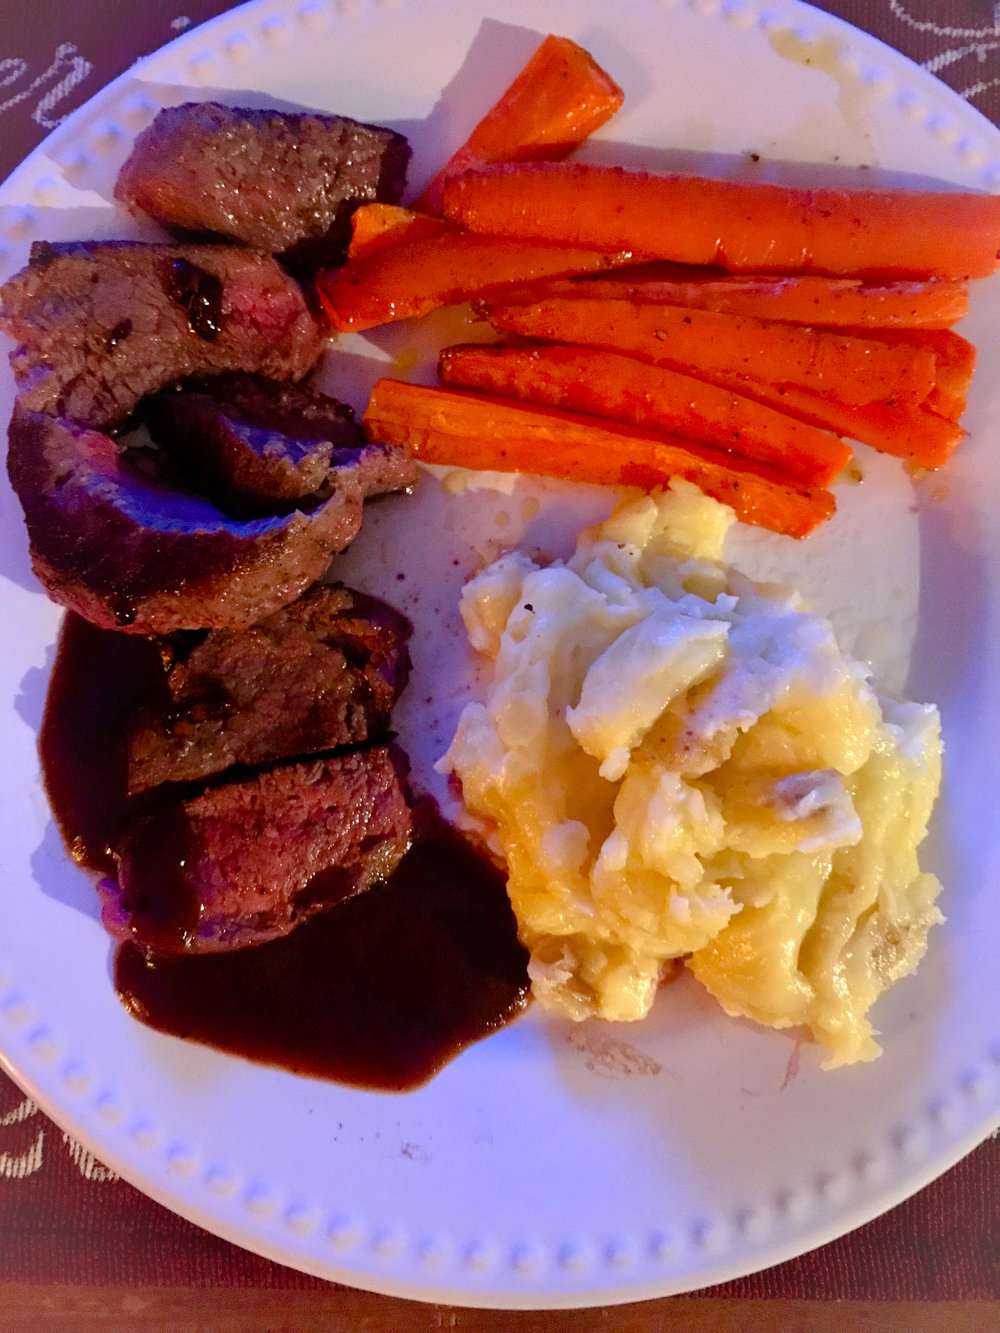 Final product of the steak with carrots and mashed potatoes. The cheesy mashed potatoes were soooooo good.